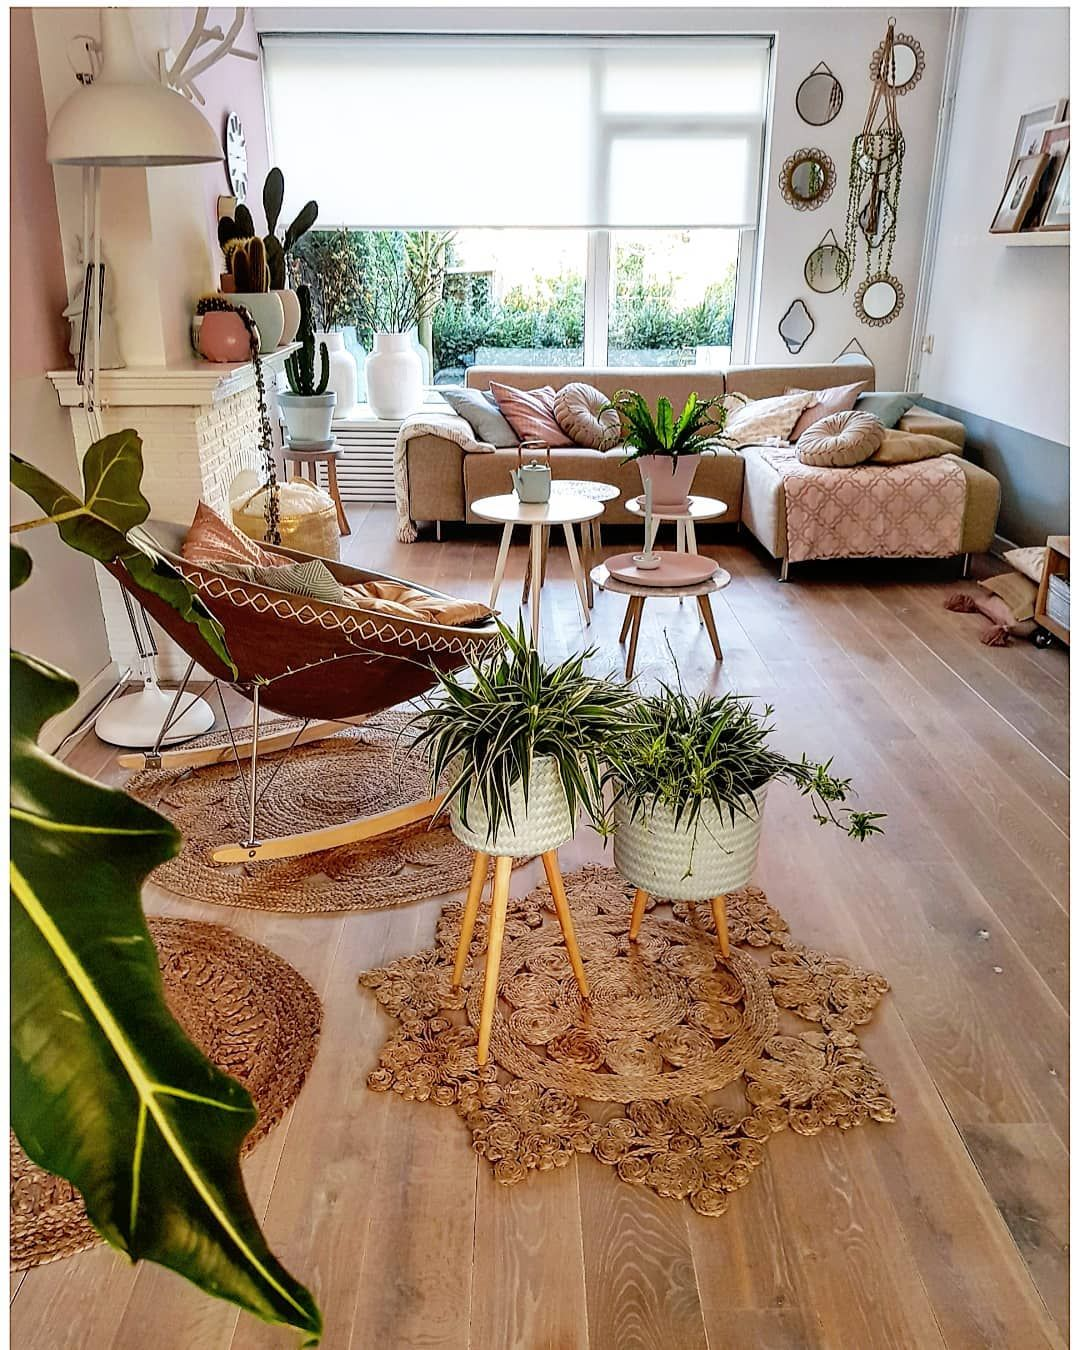 Hier vanavond lekker op bank hangen en bij jullie naar binnen kijken ik vind het wel een grappige uitspraak want weet iedereen dan  also enthralling bohemian style home decor ideas color is  rh pinterest